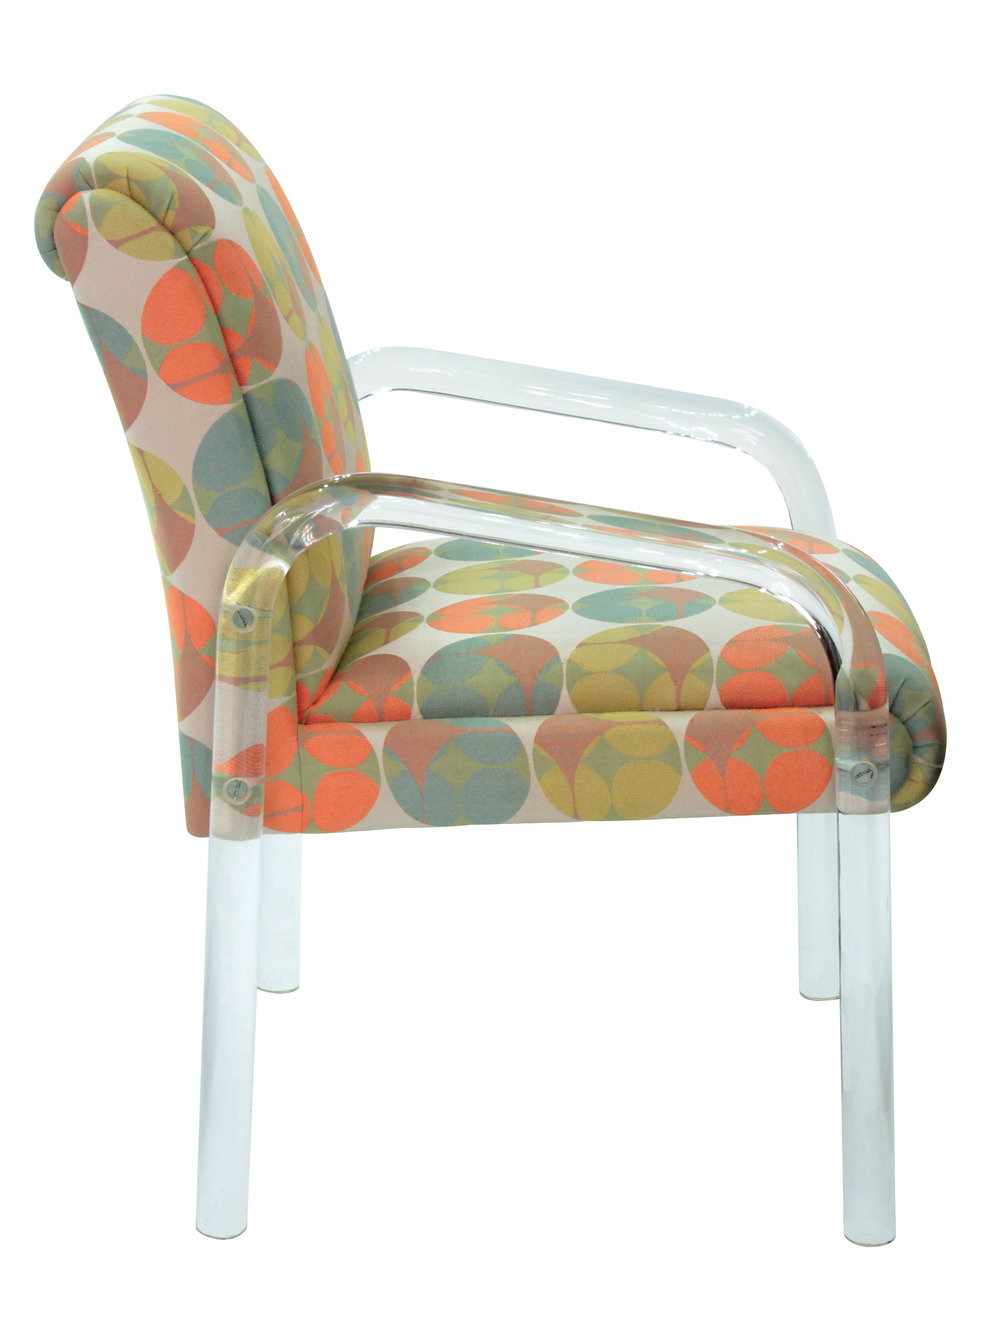 70s 60 geometric fabrics etof4 lucite arms diningchairs55 detail1 hires.jpg